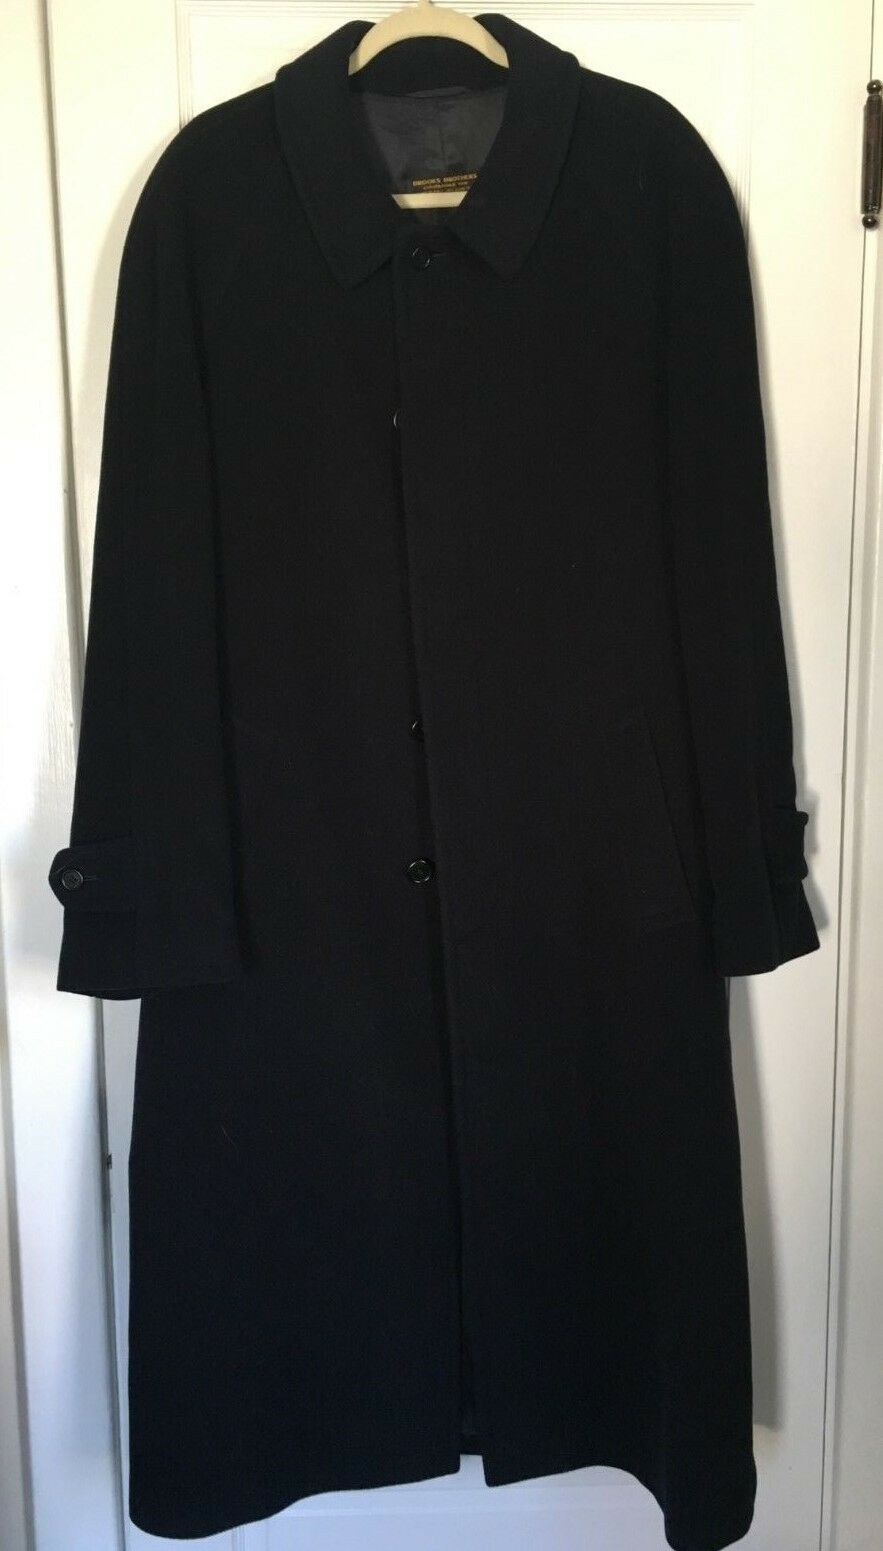 BROOKS BredHERS FULL LENGTH WOOL COAT 44L MADE IN ITALY